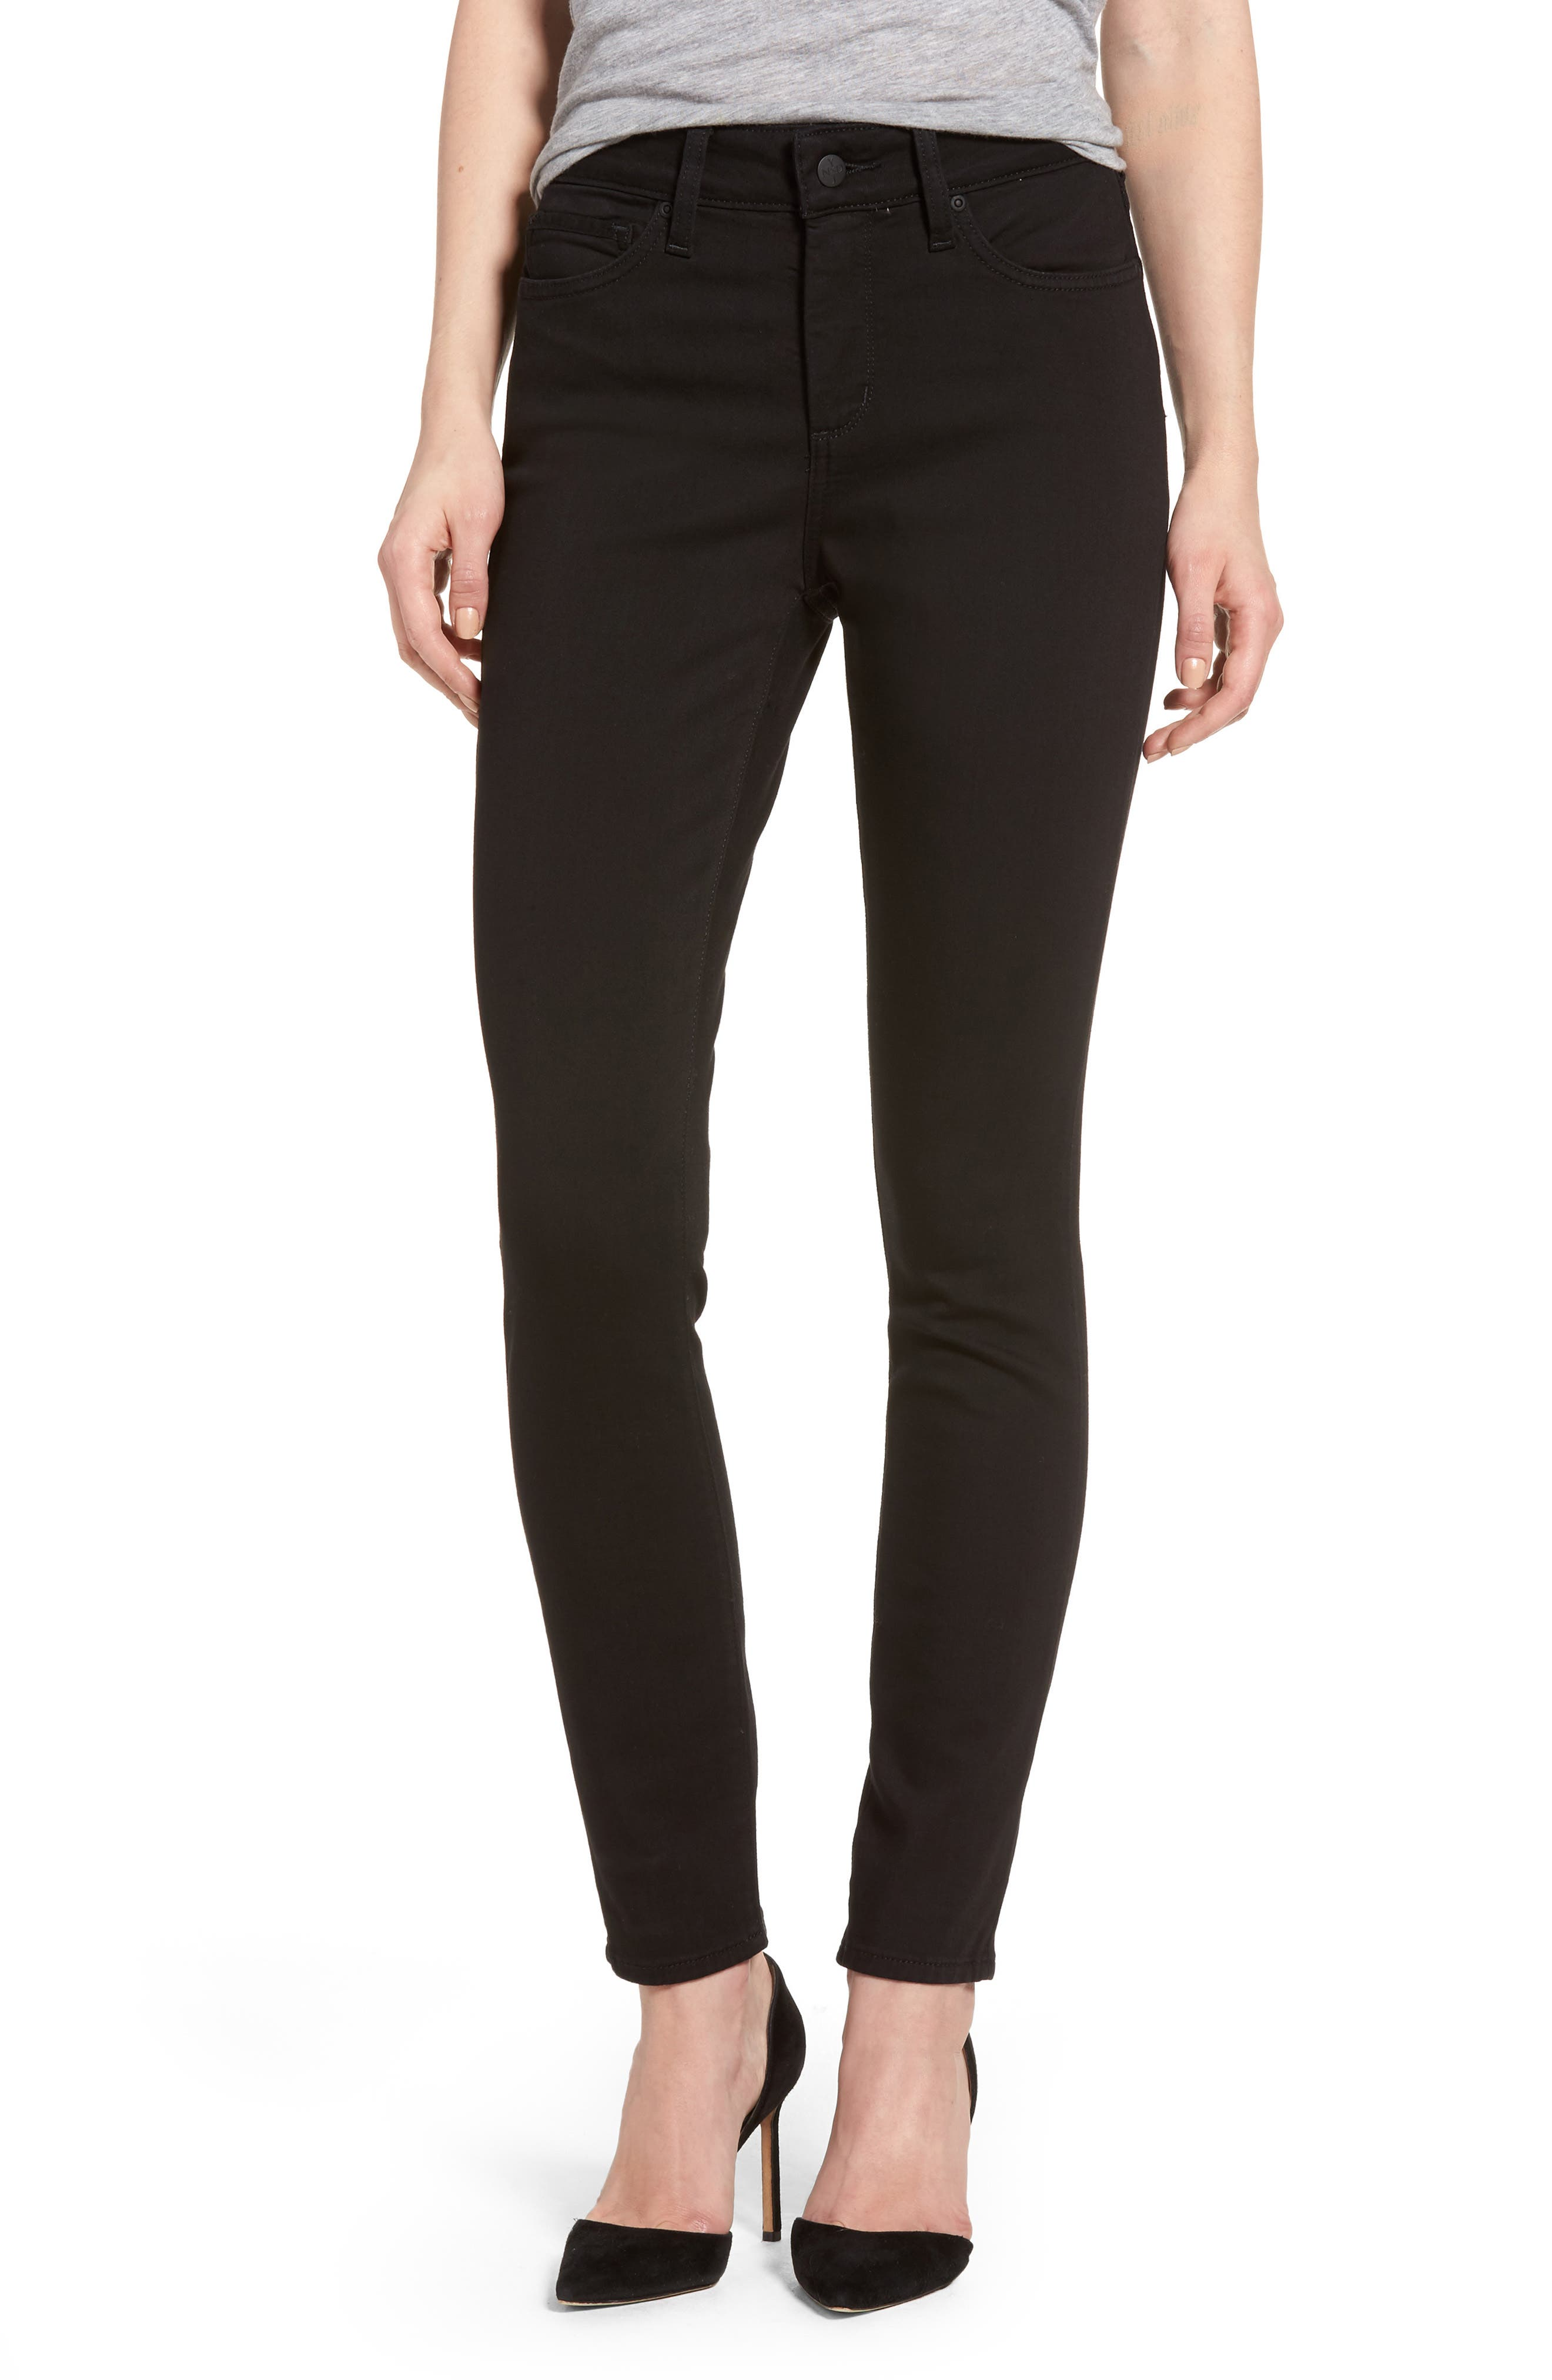 Ami Stretch Skinny Jeans,                         Main,                         color, 001